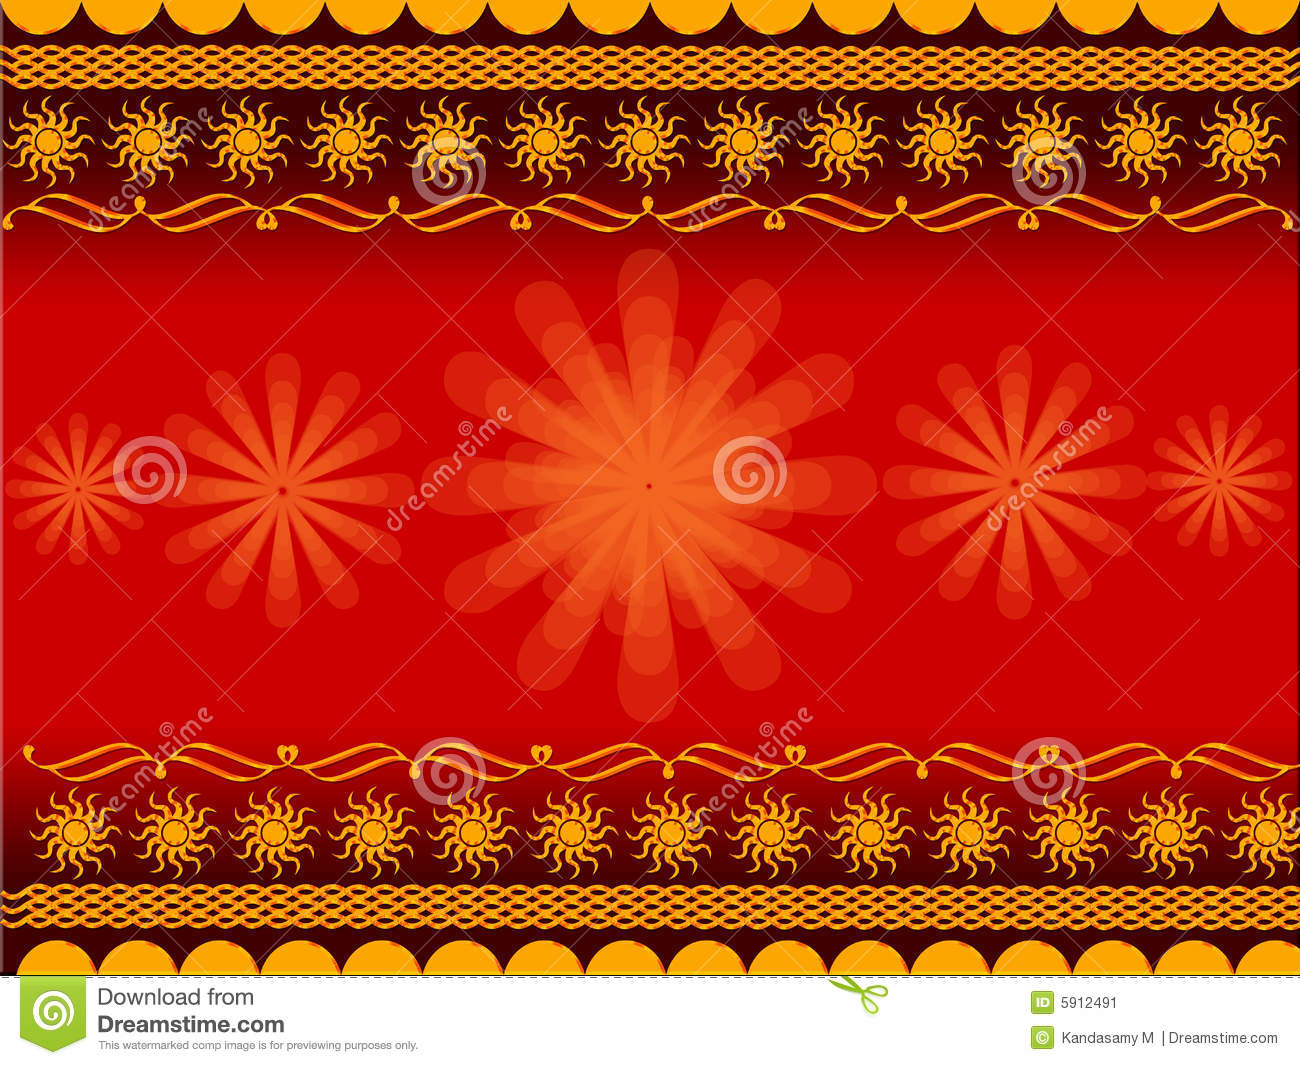 rangoli abstract background wallpapers - photo #28